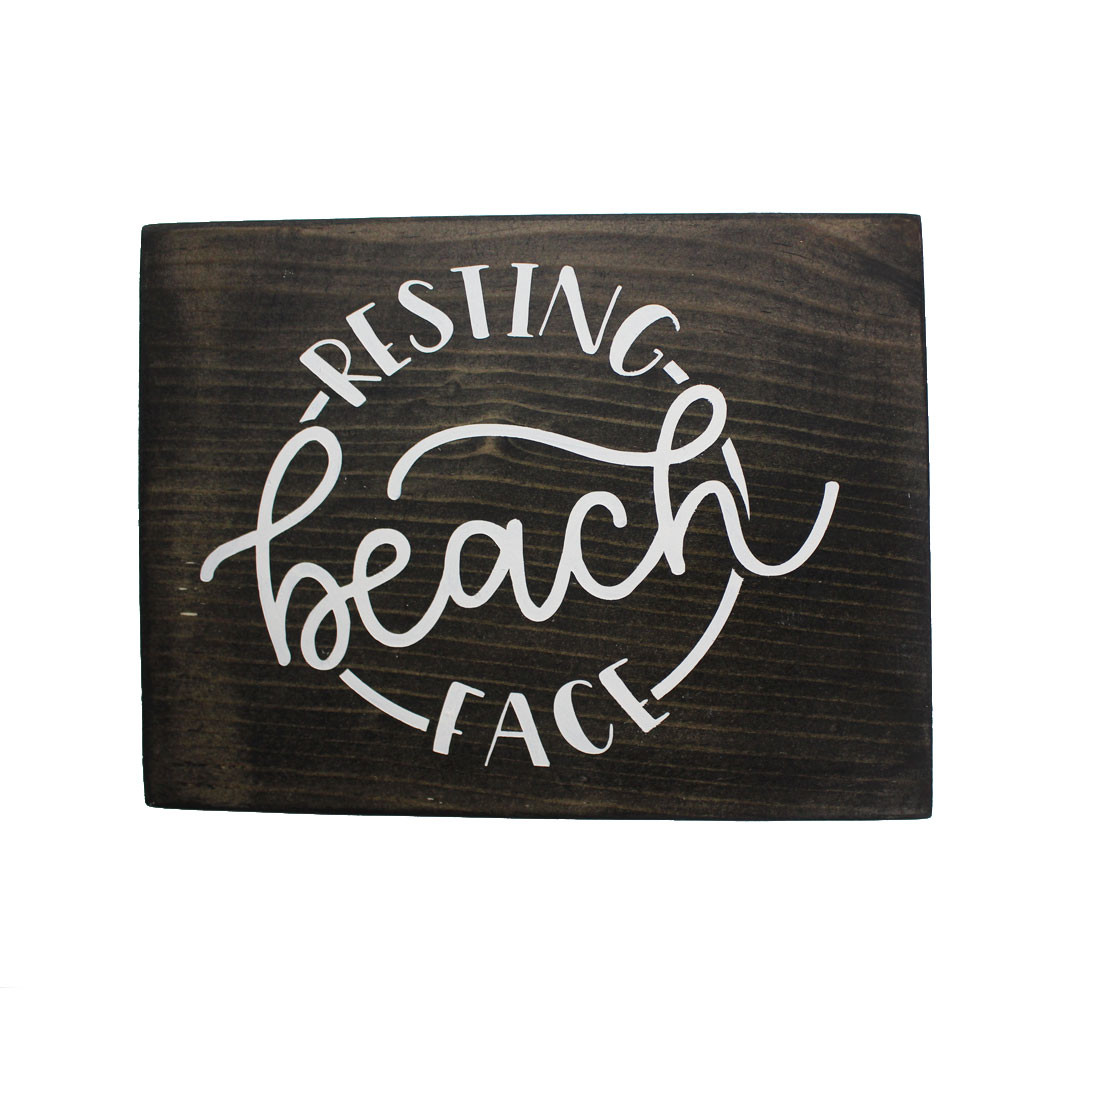 Resting Beach Face handmade in the USA wooden sign.